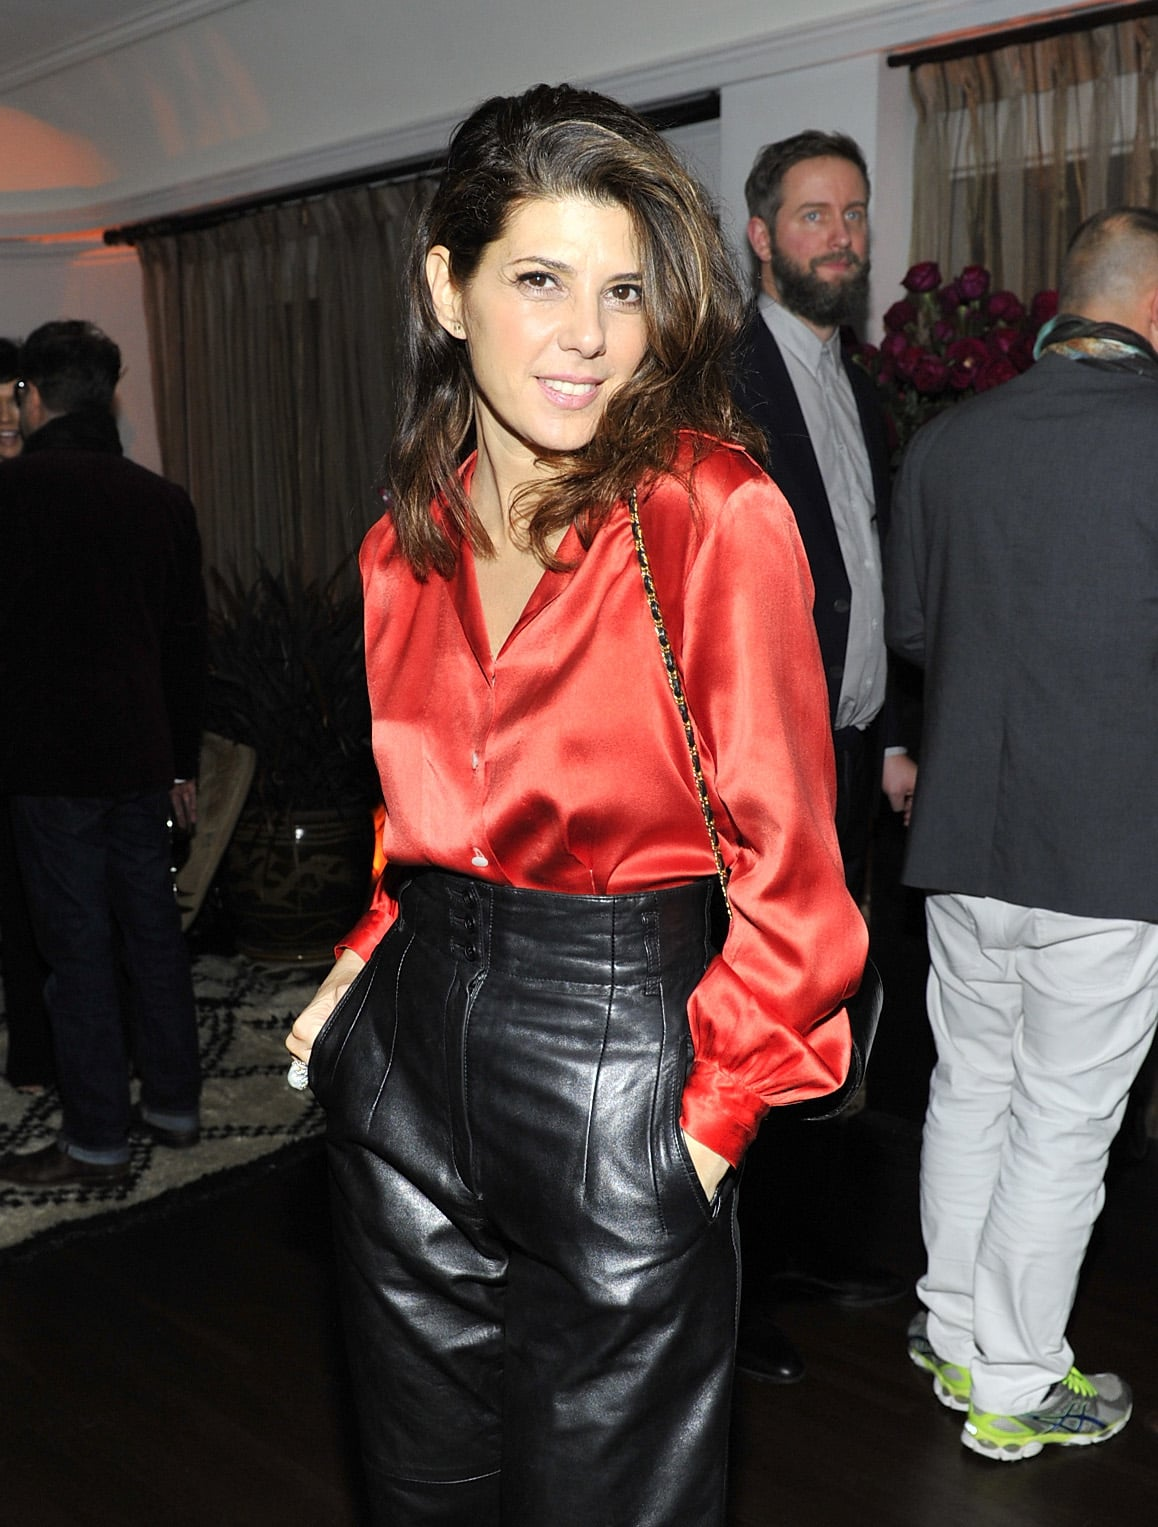 Marisa Tomei channeled The Wolf of Wall Street.